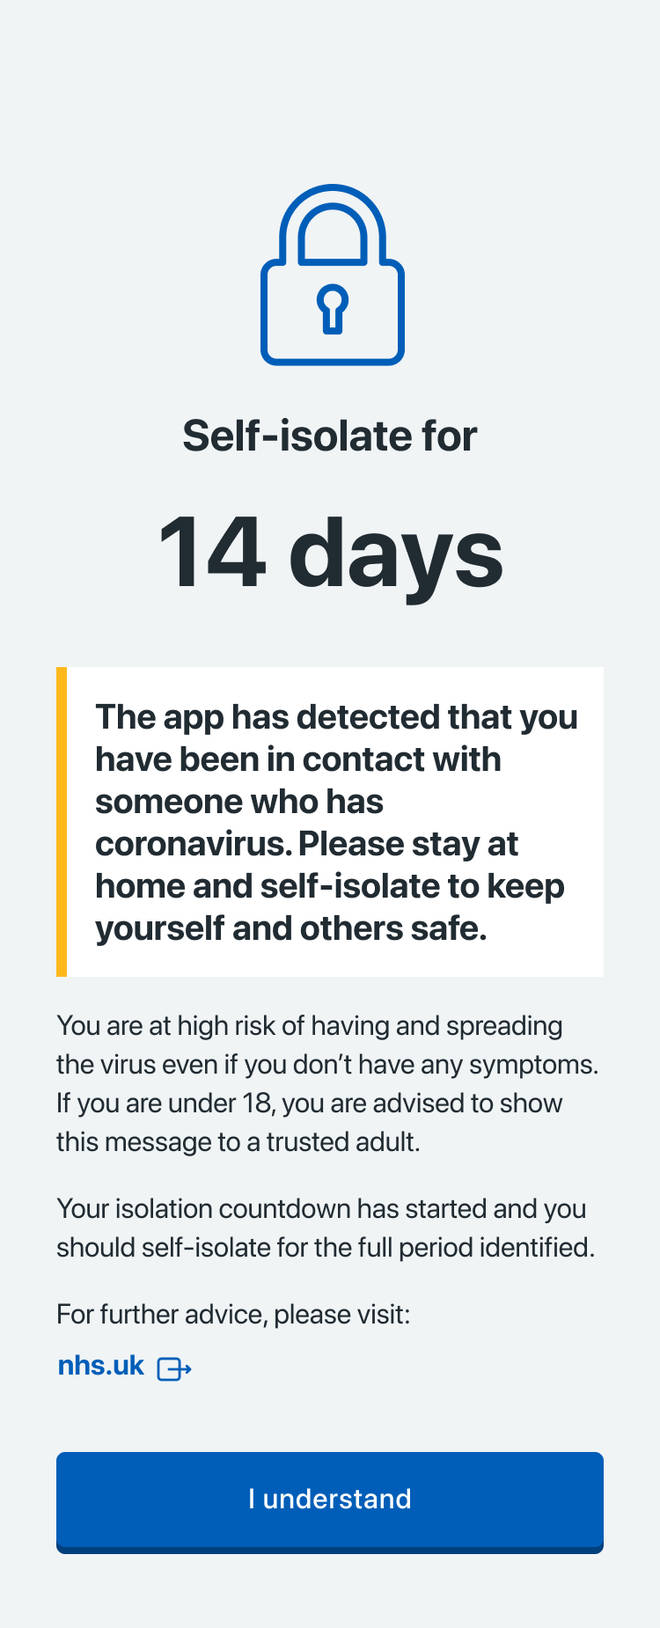 If you test positive for coronavirus (COVID-19), the app will tell you to self-isolate. If you are under 18, you are advised to show the alert to a trusted adult.